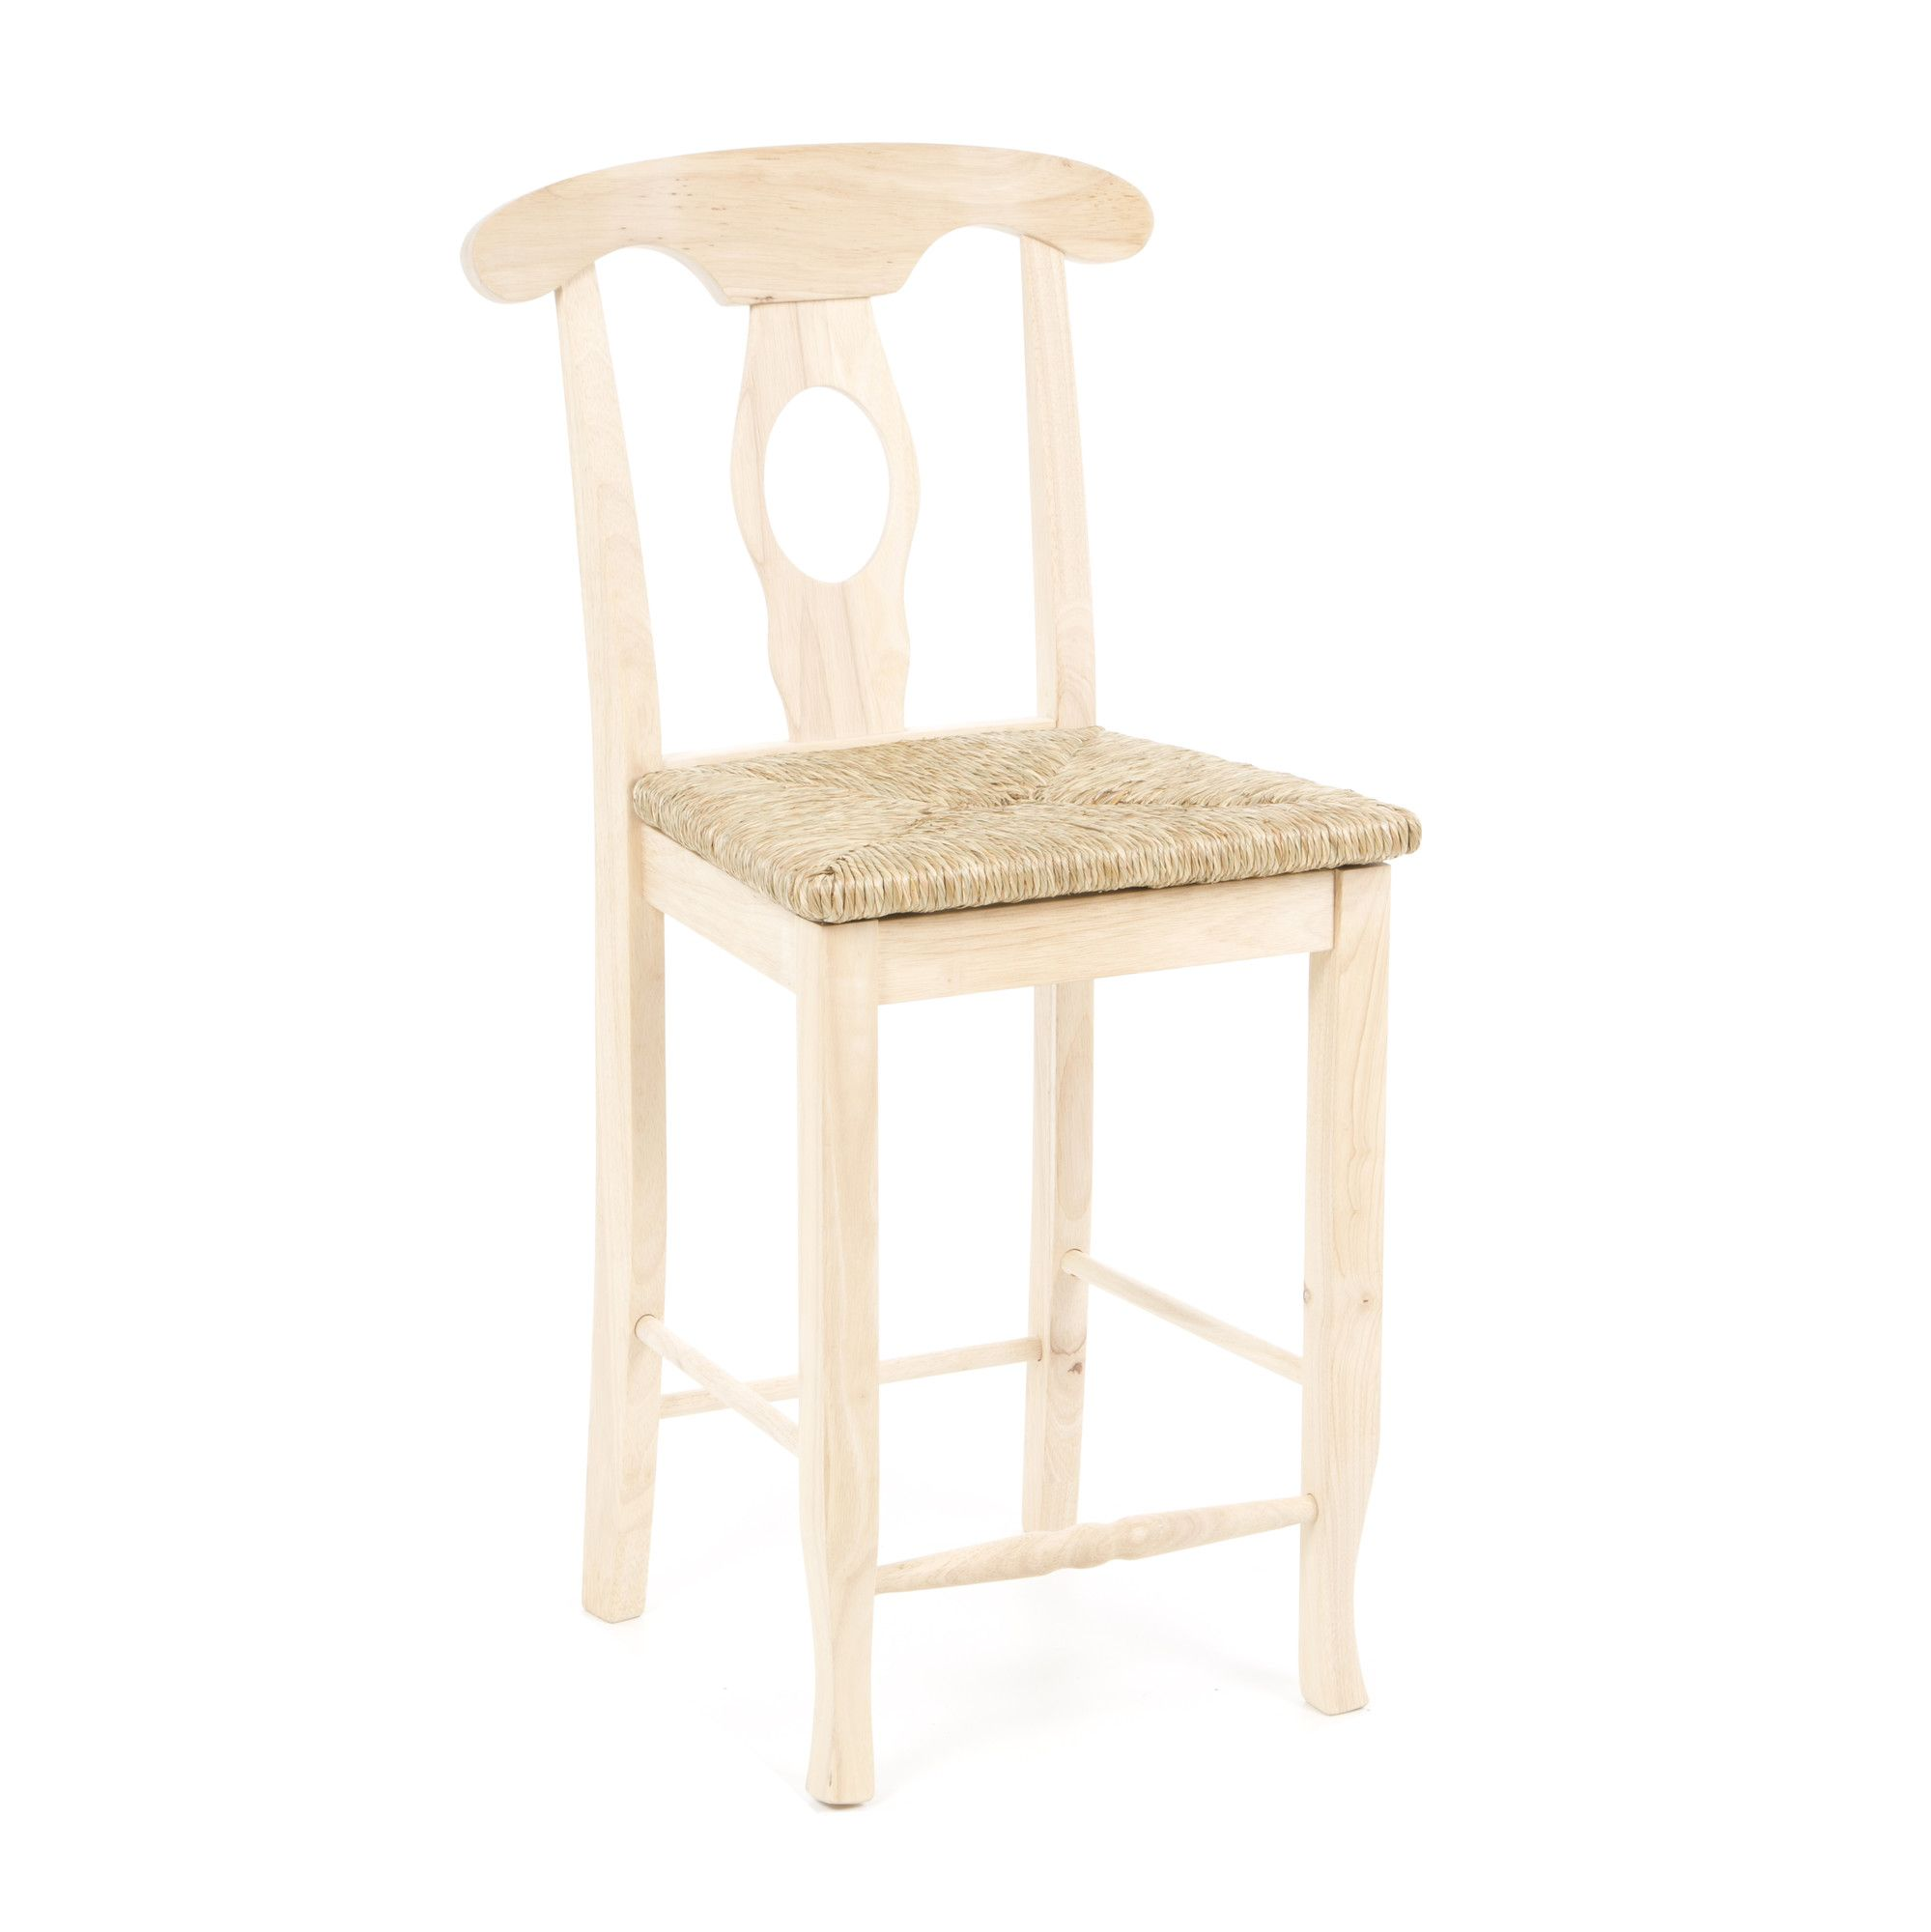 Online Home Store For Furniture Decor Outdoors More Wayfair Bar Stools 24 Bar Stools Stool